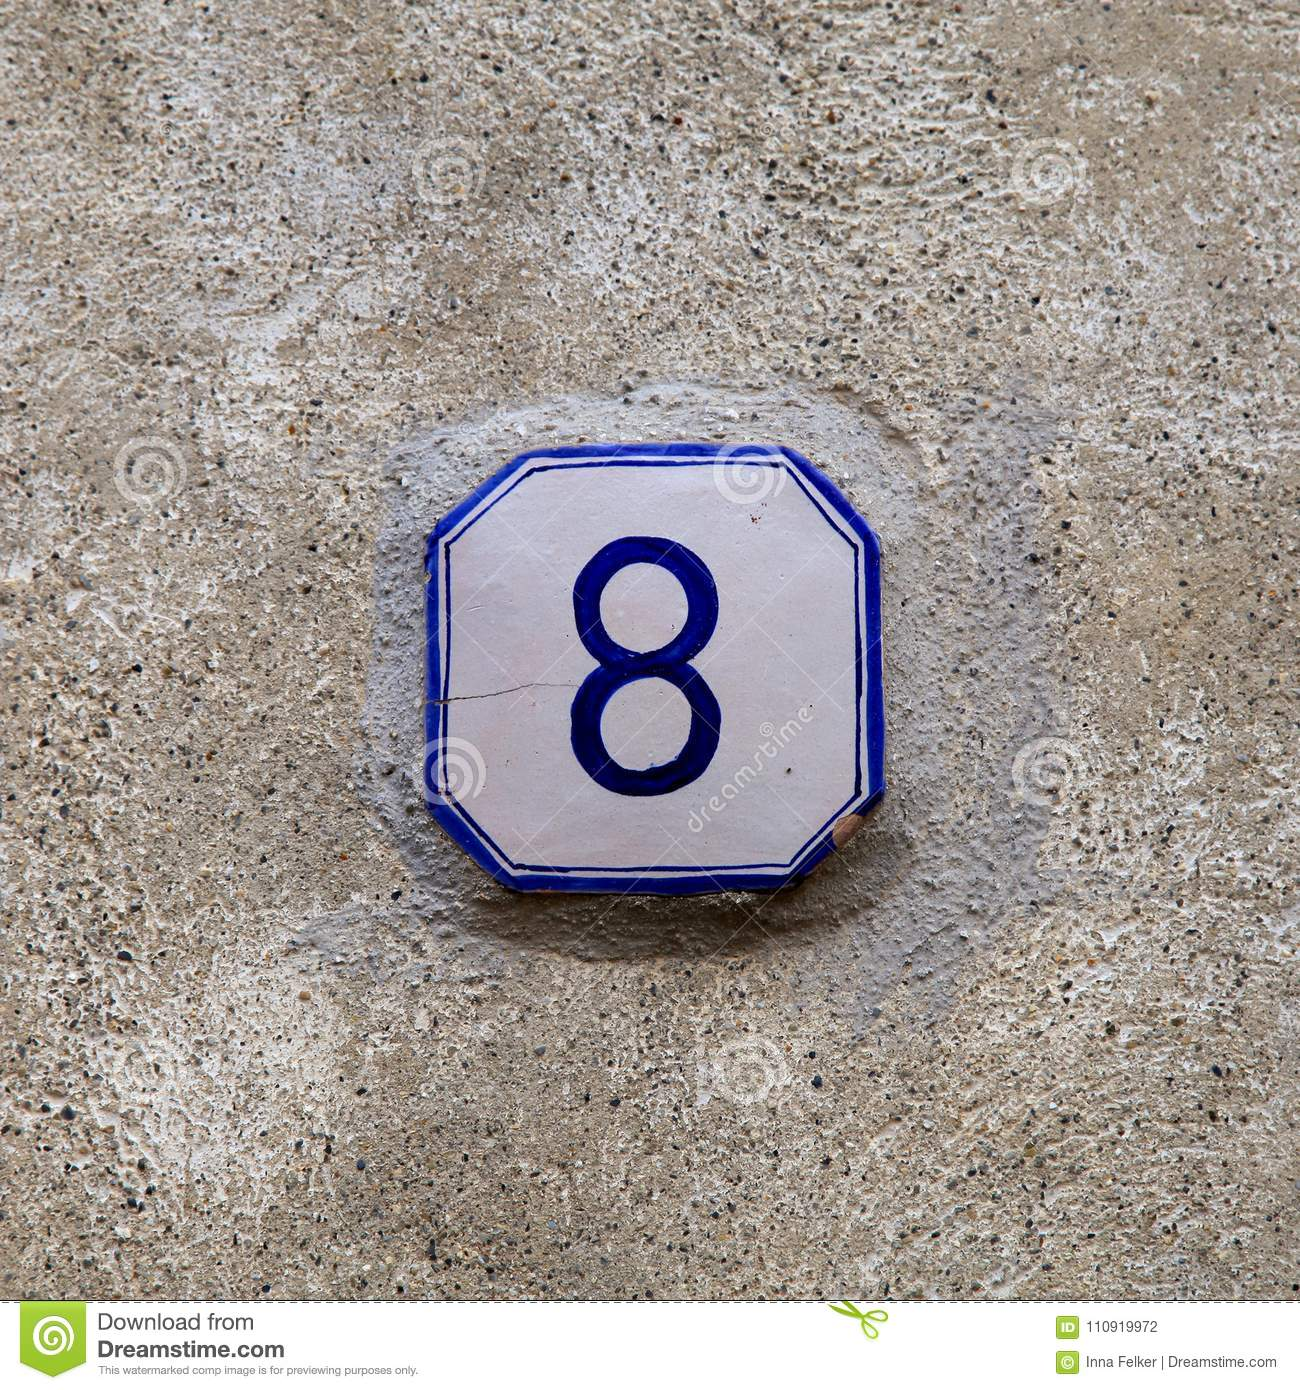 Number 8 eight on blue and white ceramic sign.